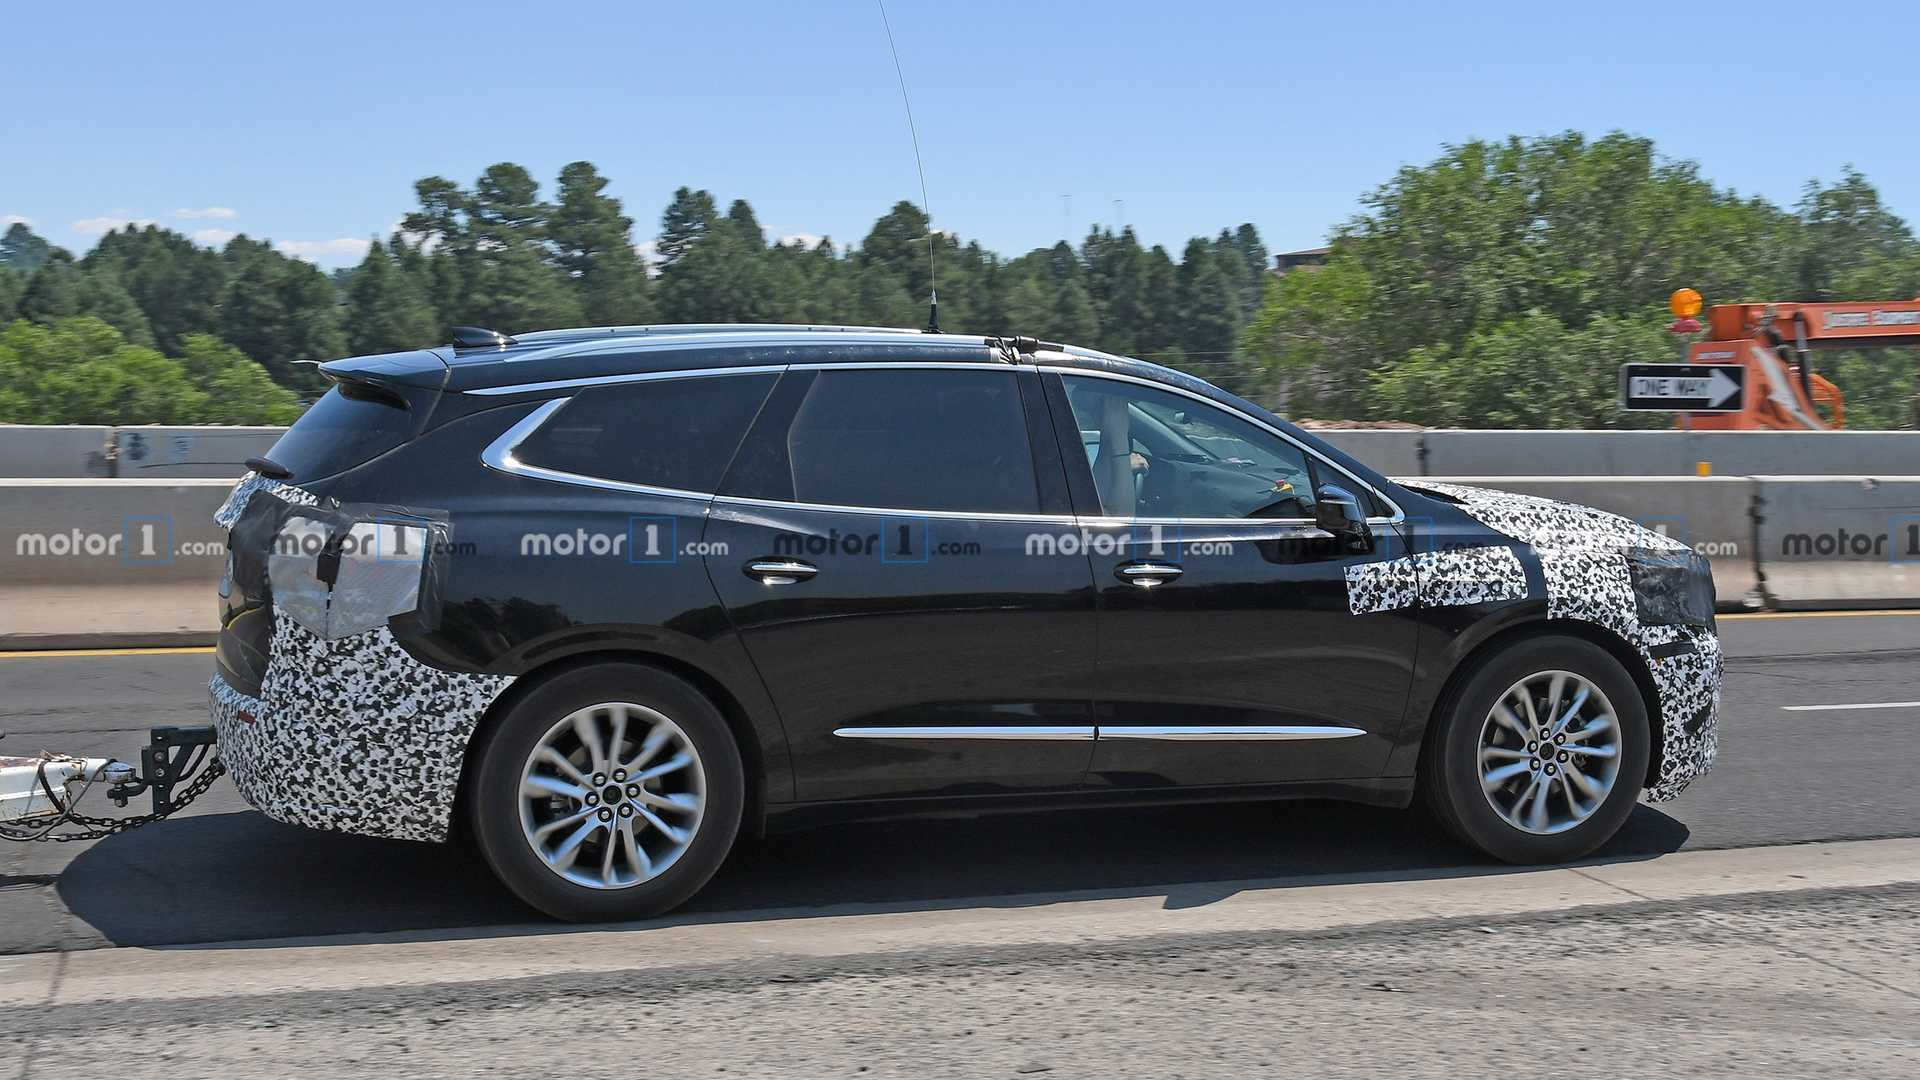 2021 Buick Enclave Spied For The First Time | CarsRadars